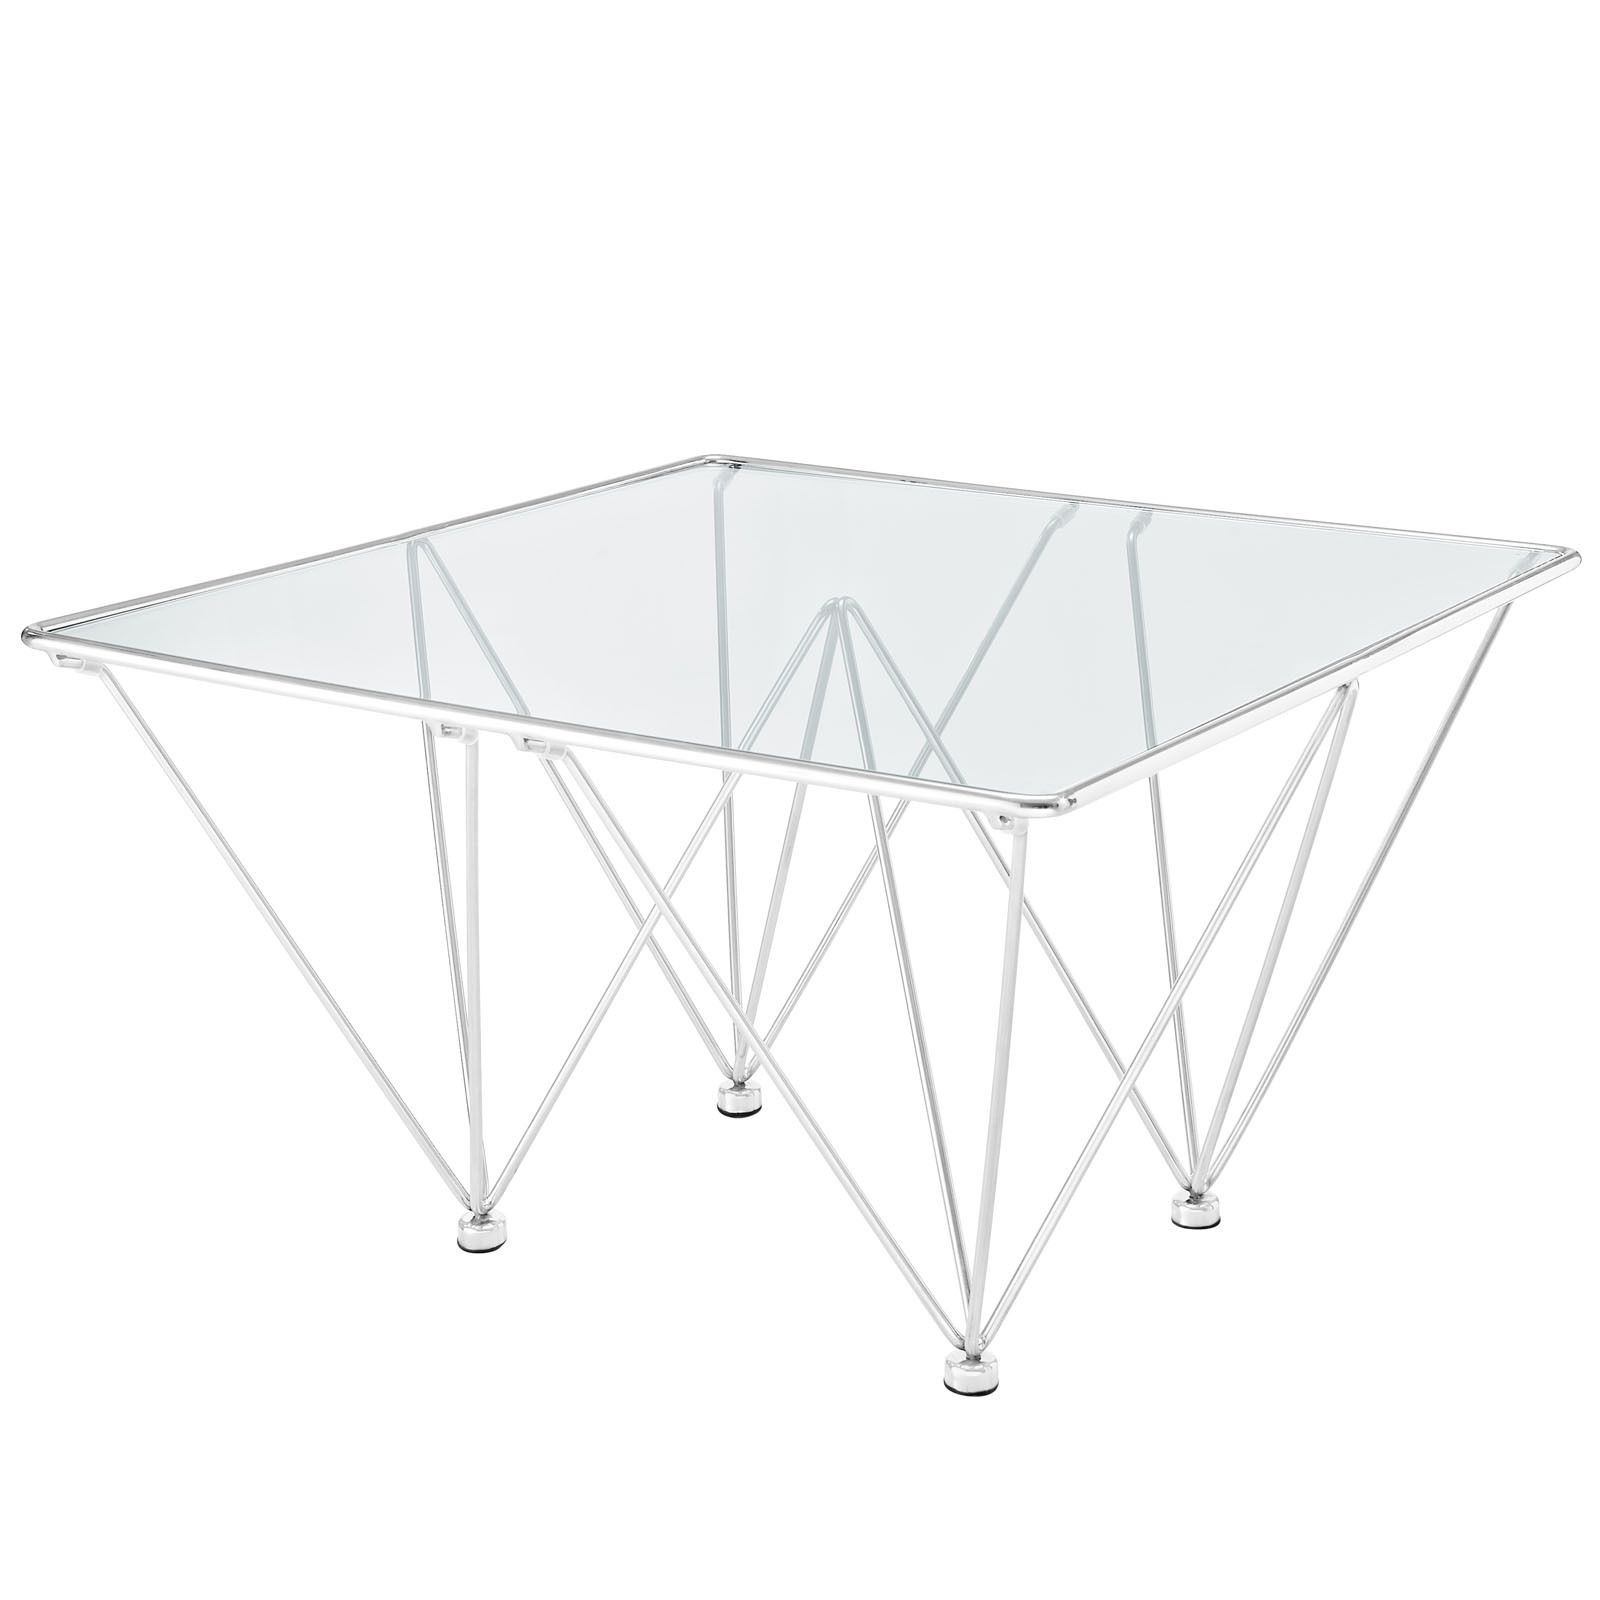 Edifice Stainless Steel Coffee Table by Modway